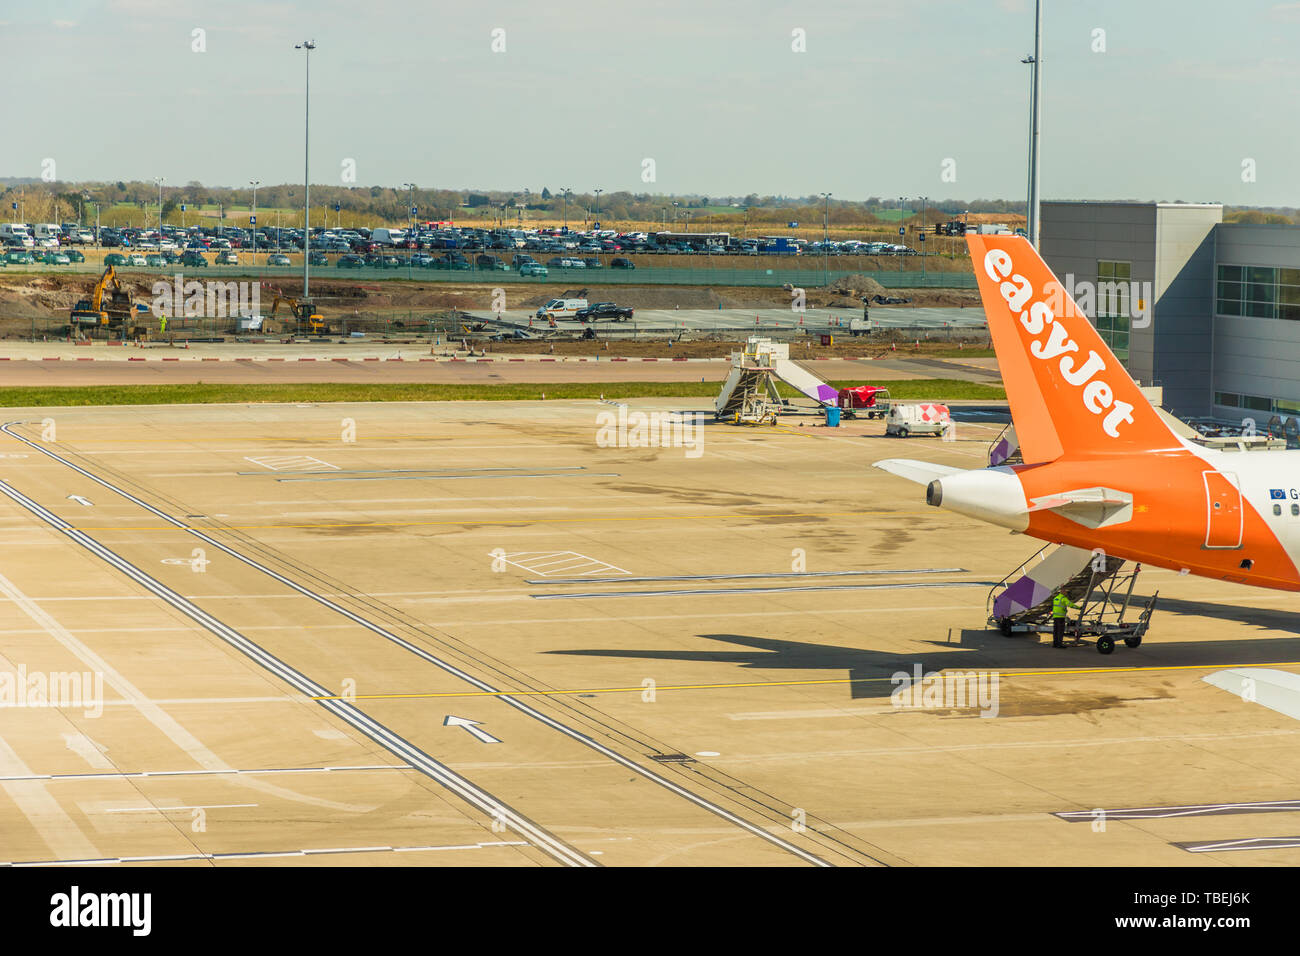 A view at Luto Airport in the UK Stock Photo